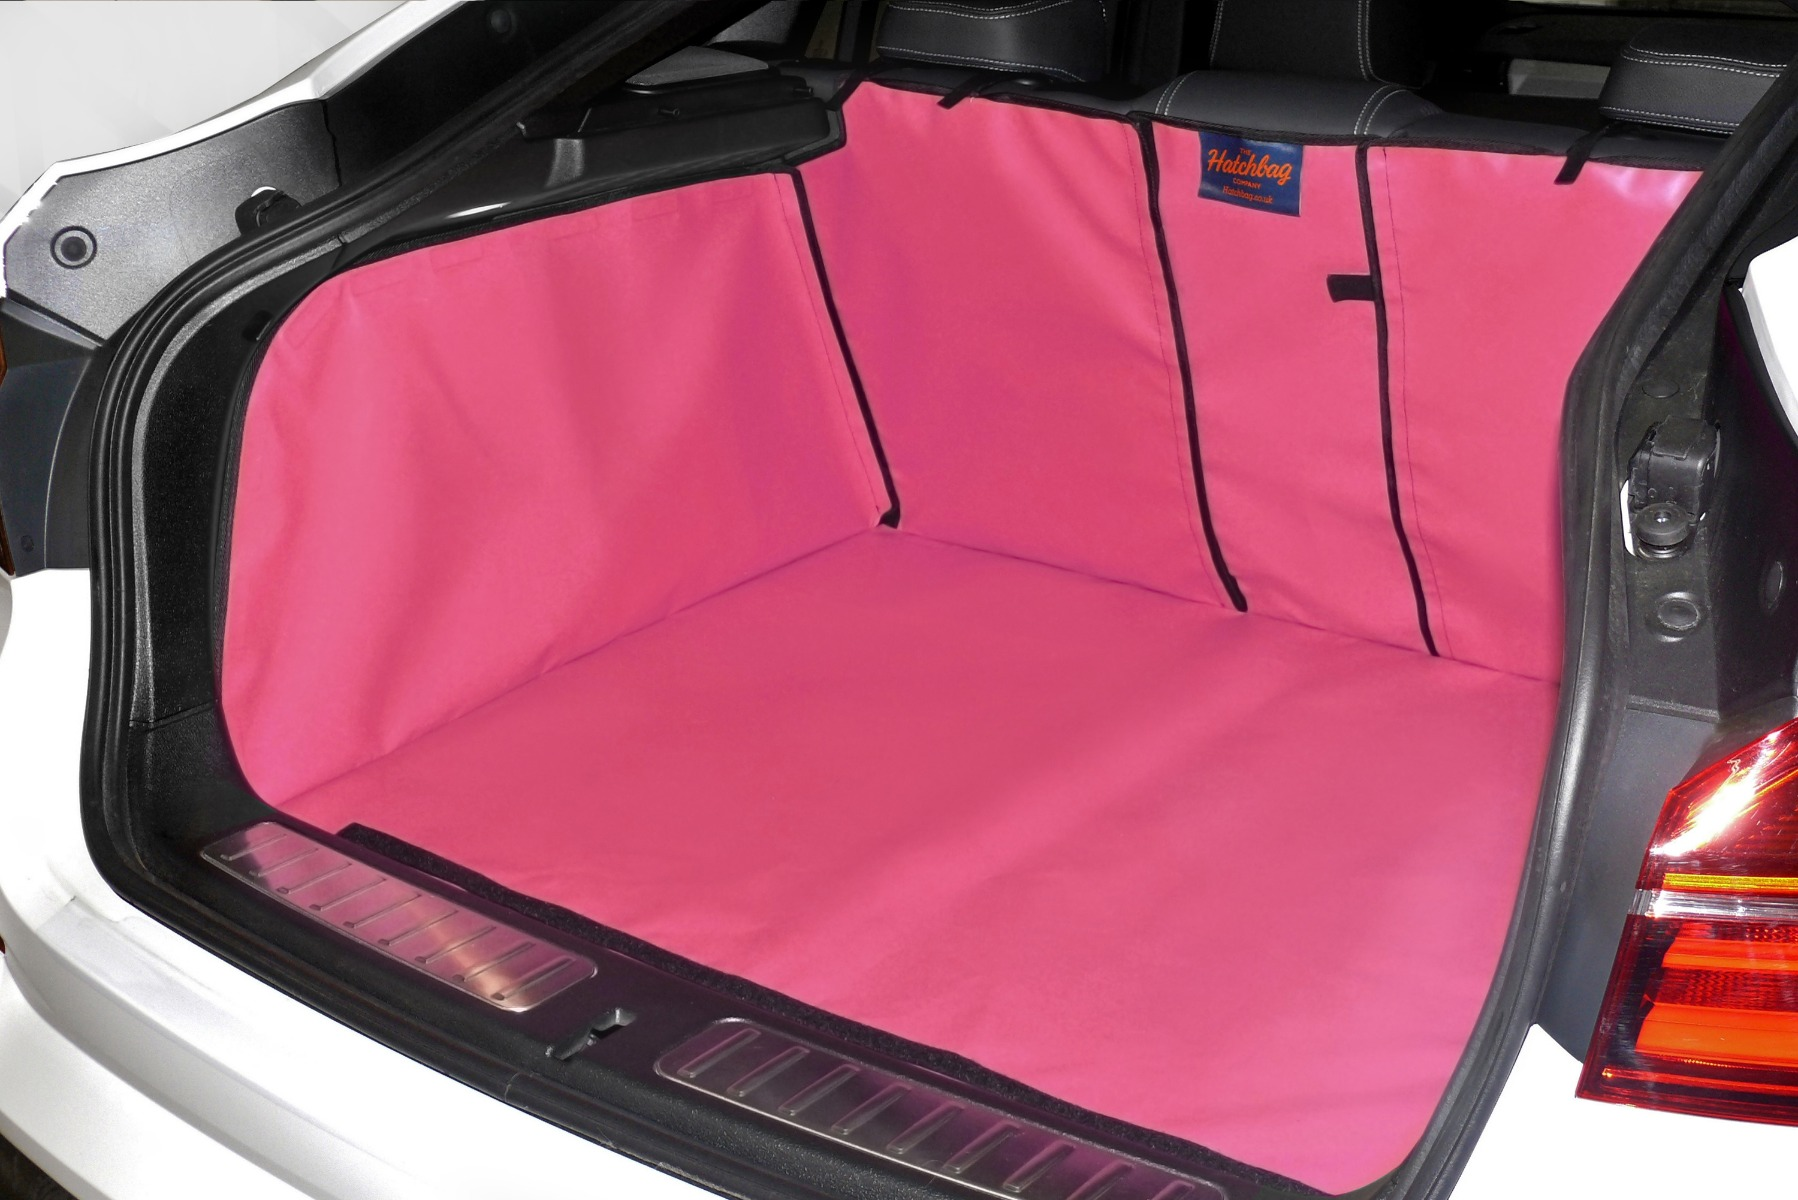 Hatchbag boot liner in pink